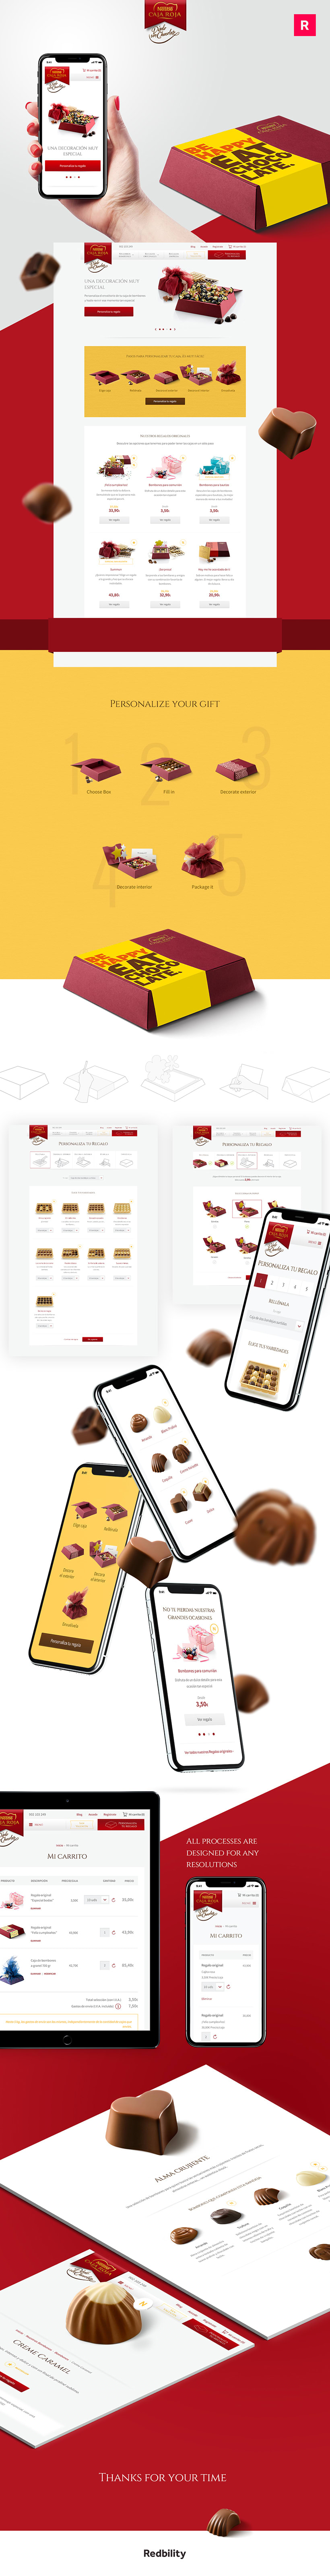 Nestlé. Díselo con Chocolate. Responsive website 0